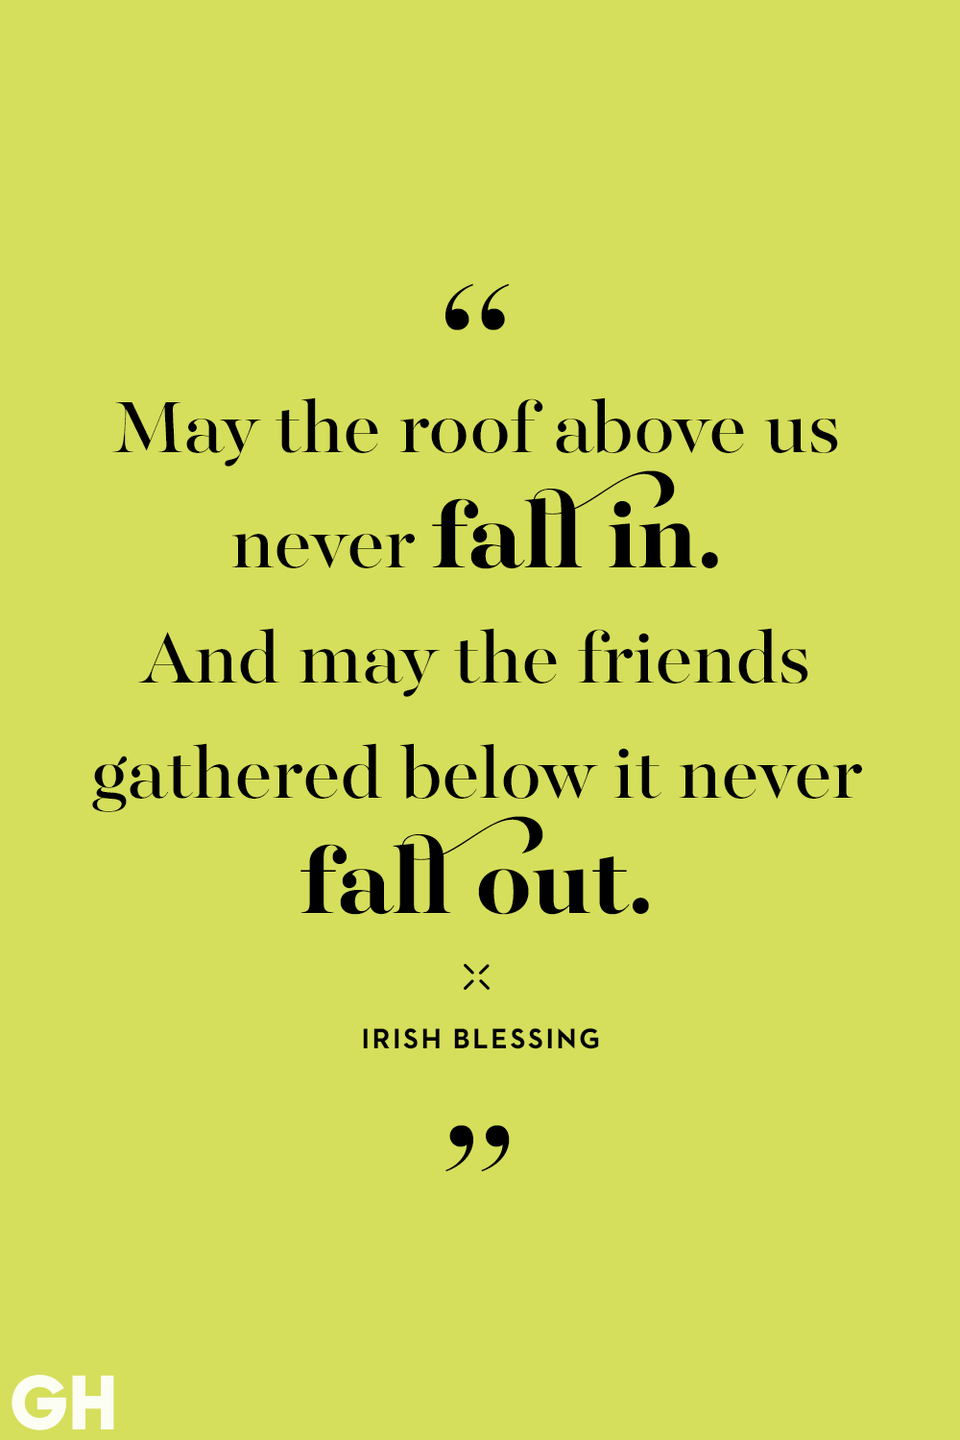 "<p>""May the roof above us never fall in. And may the friends fathered below it never fall out."" </p>"